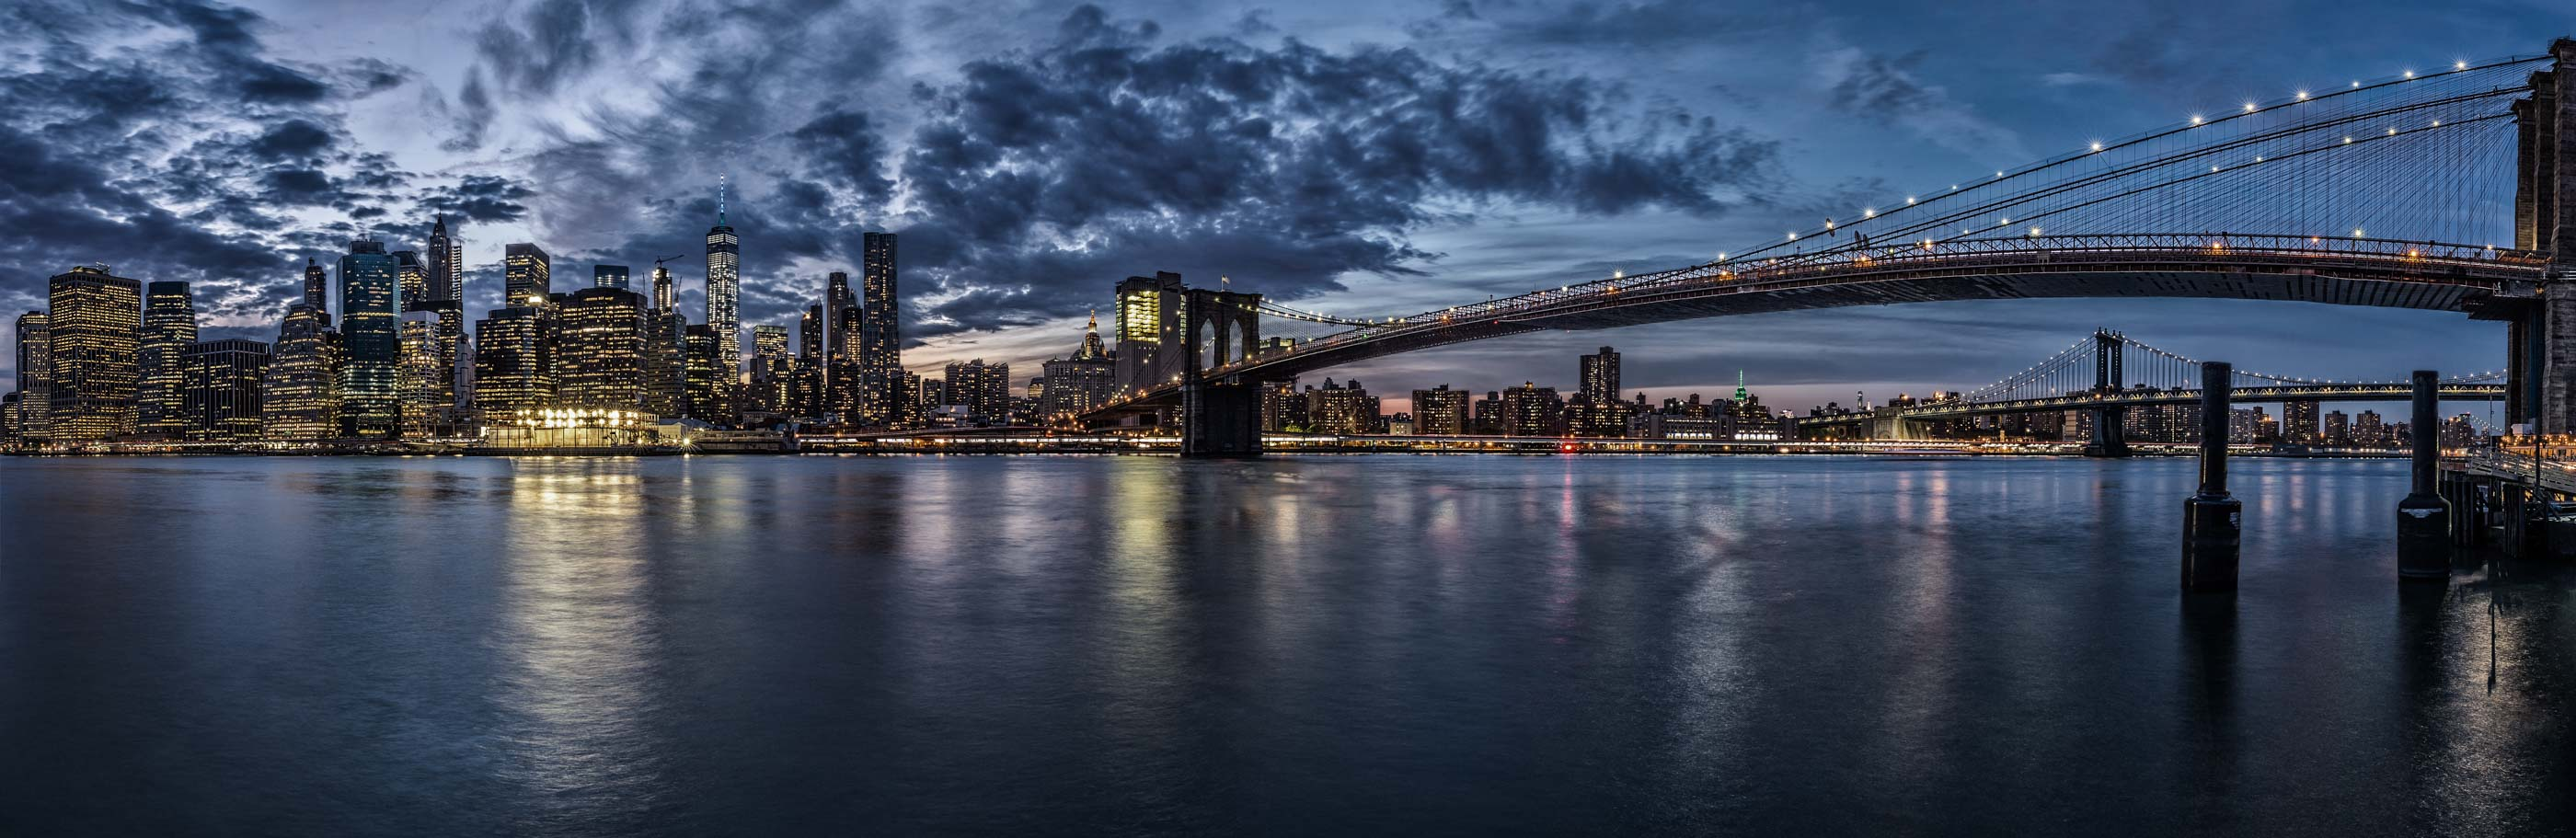 Skyline of New York City during Blue Hour